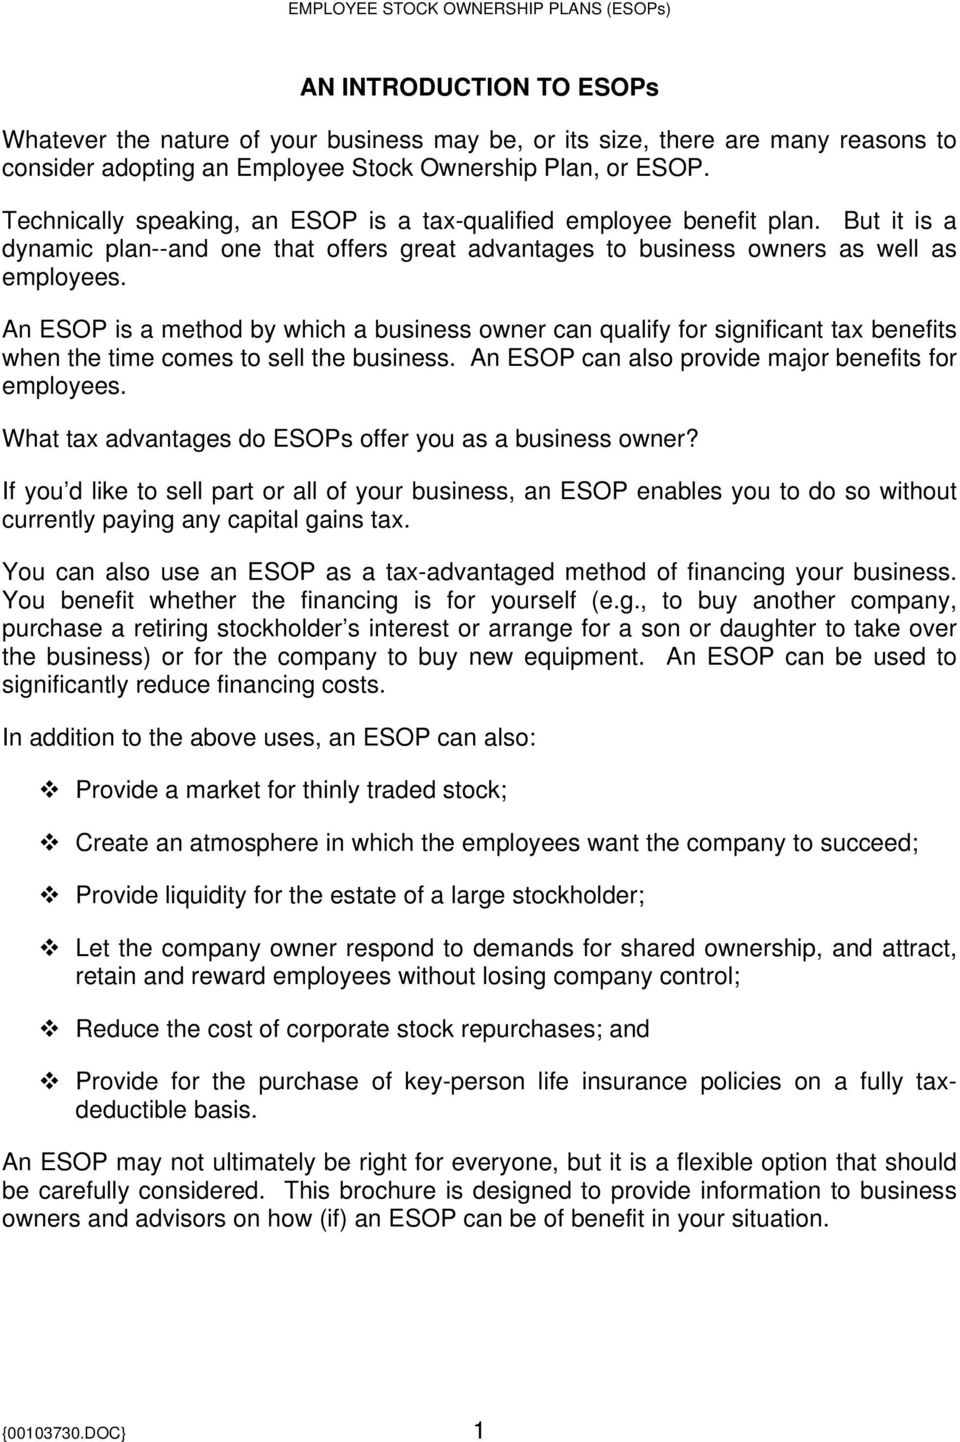 An ESOP is a method by which a business owner can qualify for significant tax benefits when the time comes to sell the business. An ESOP can also provide major benefits for employees.